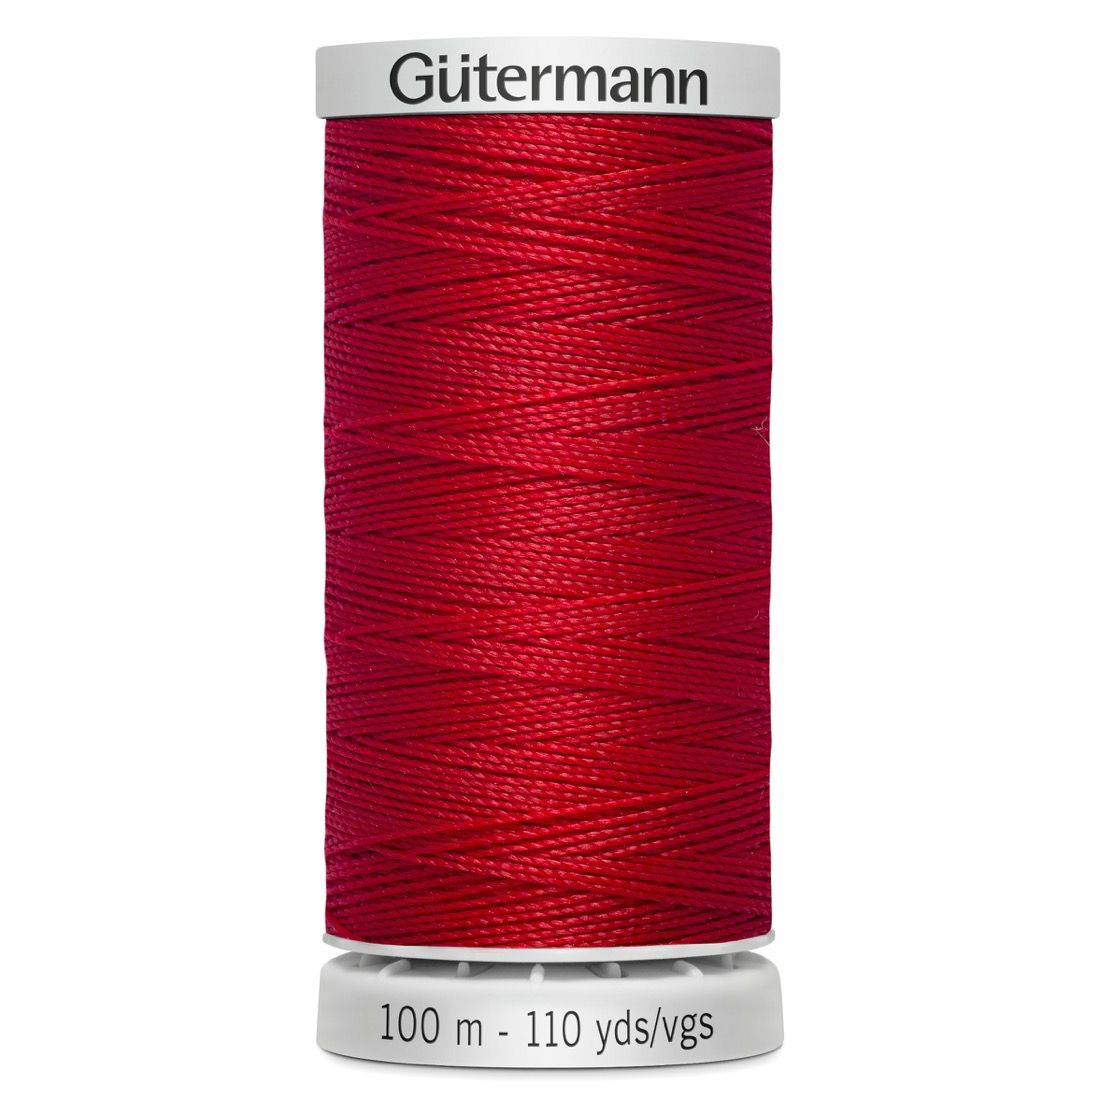 Gutermann Extra Strong Upholstery Thread - 100m - 156